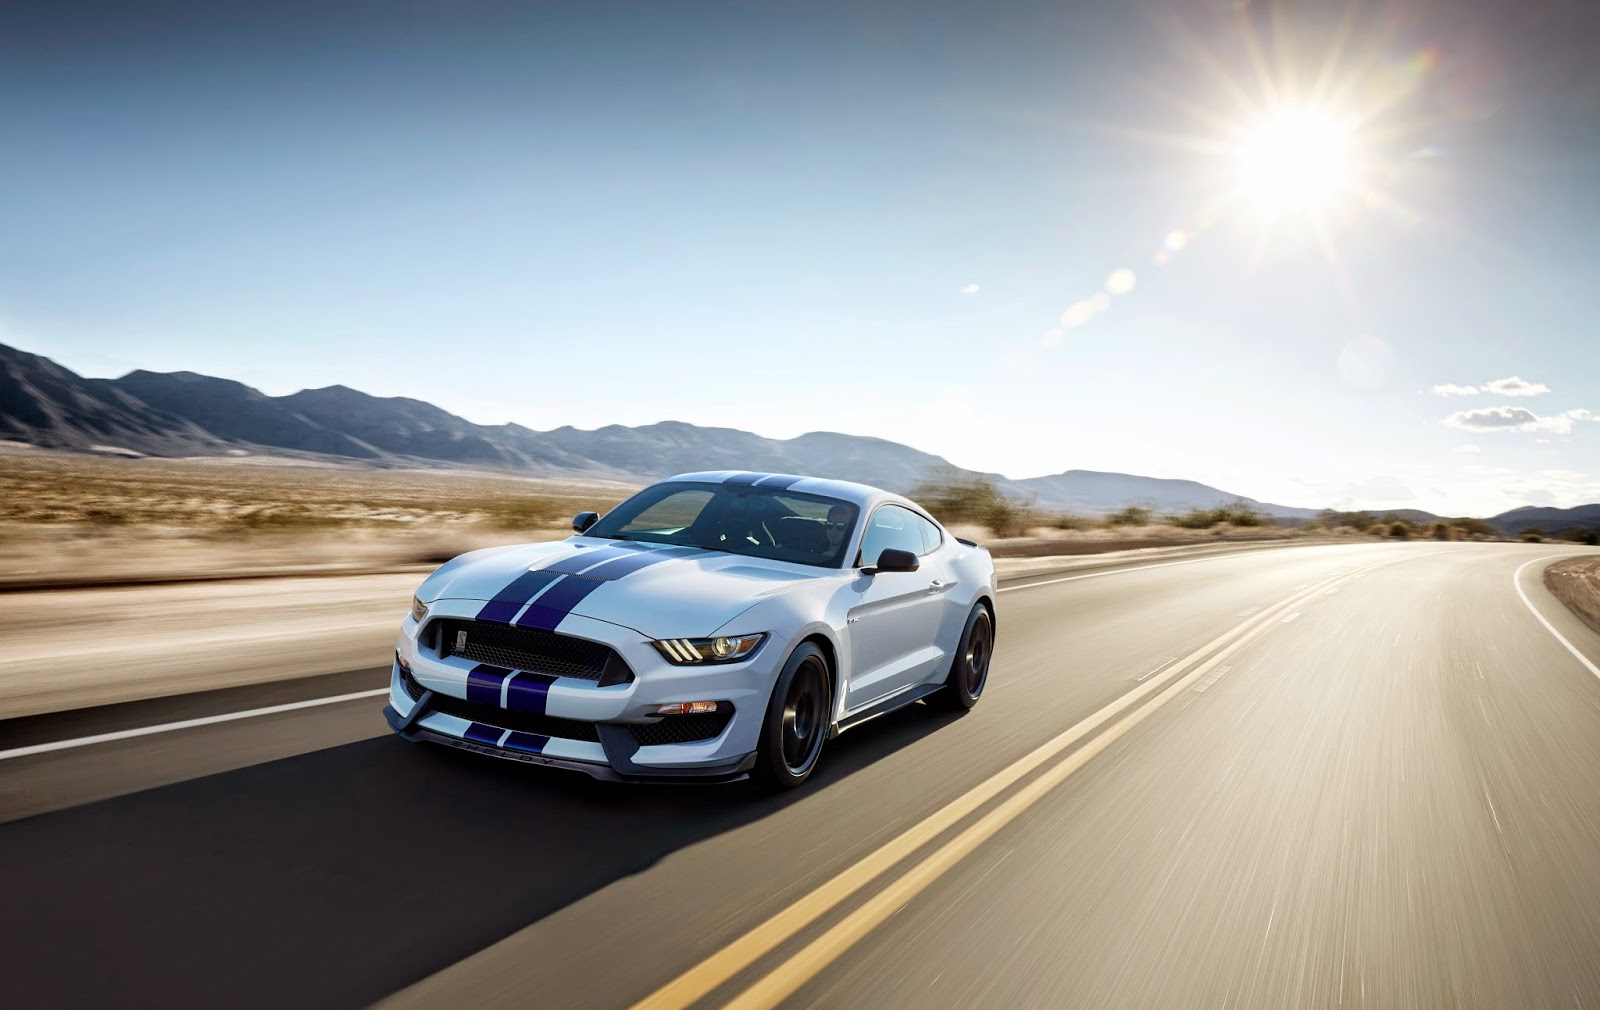 First Shelby GT350 Mustang to be Sold at Barrett Jackson Auction